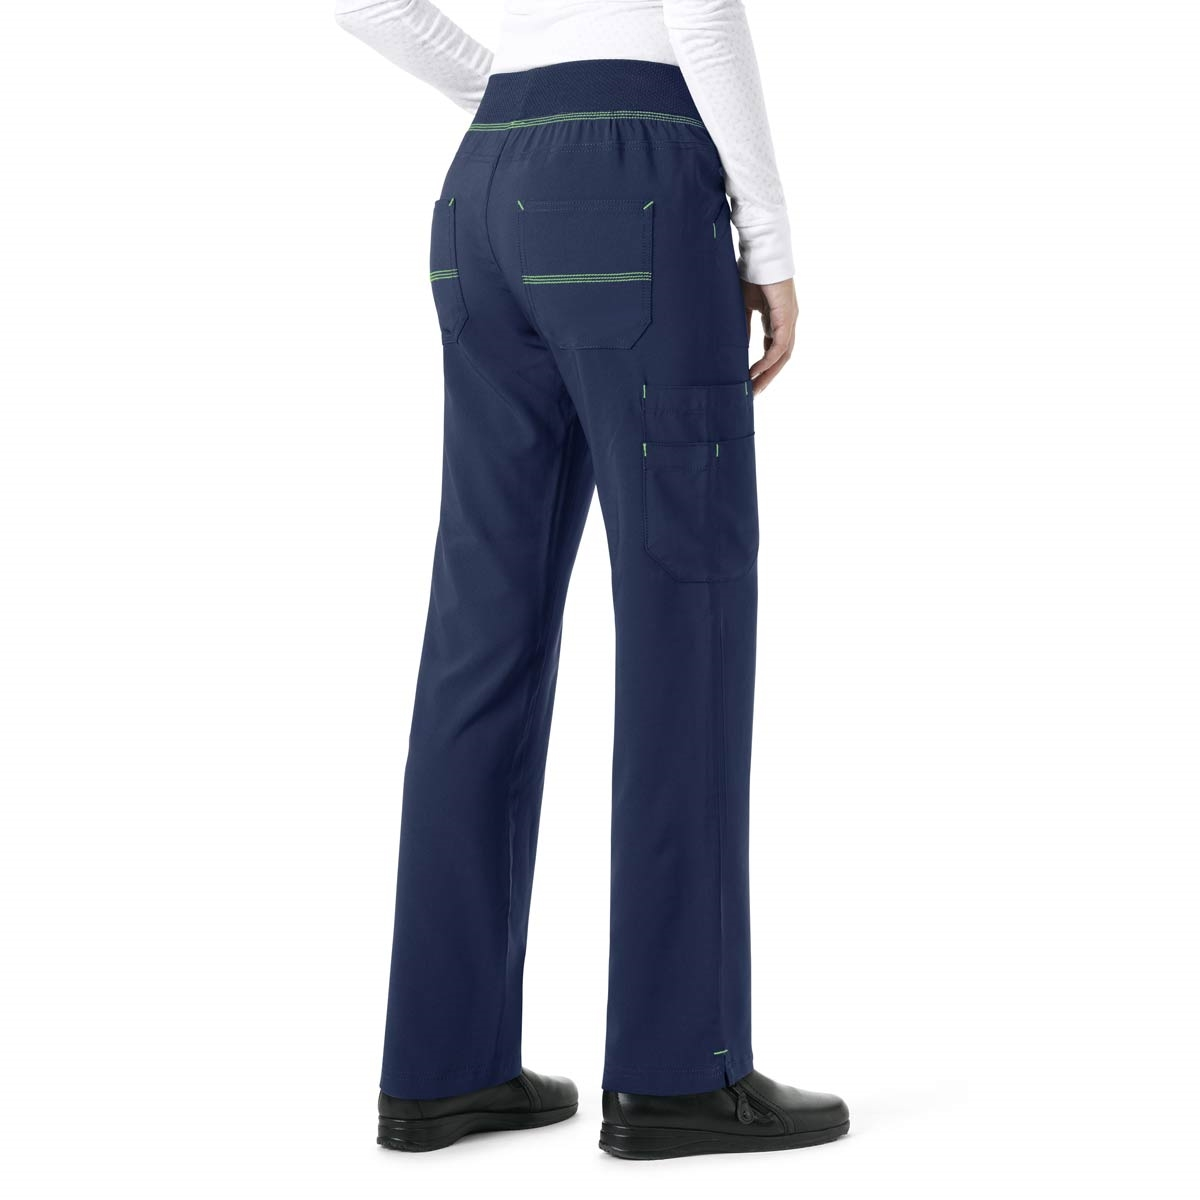 f61785b35161d Scrub Cargo Pants For Women With Cross-Flex Fabric!